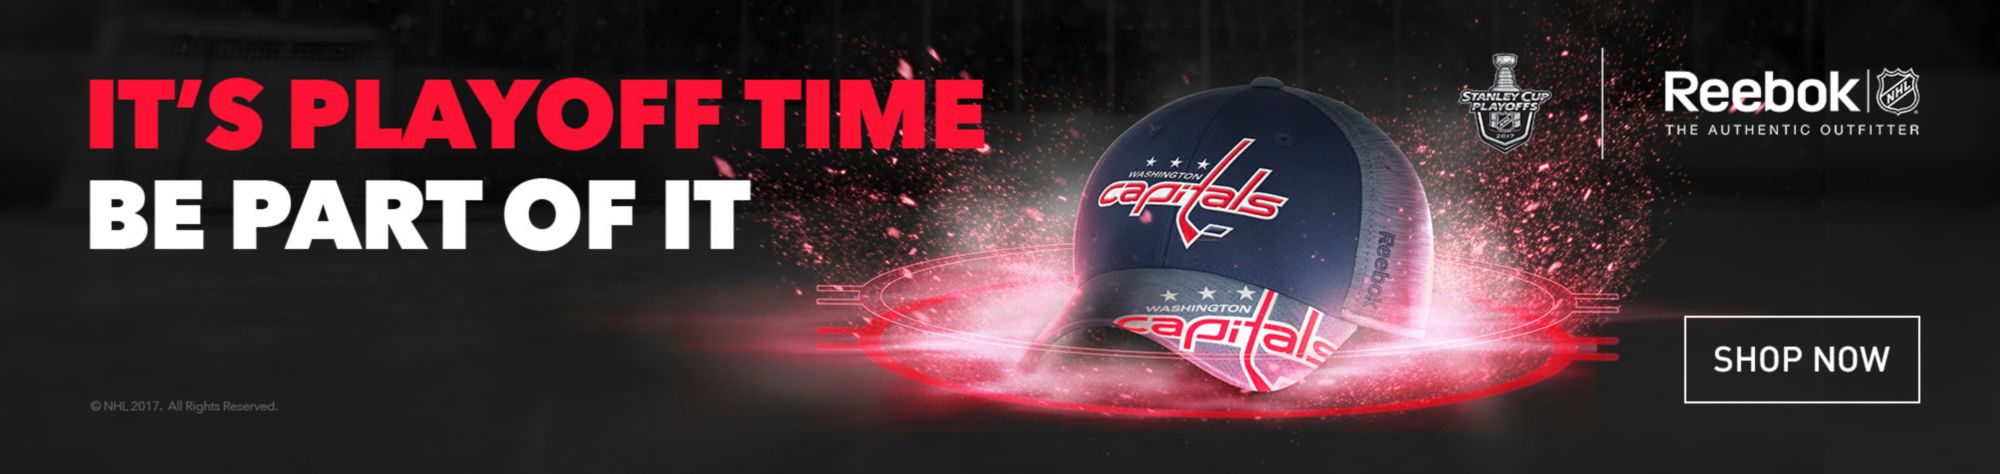 NHL Reebok Playoffs - Washington Capitals